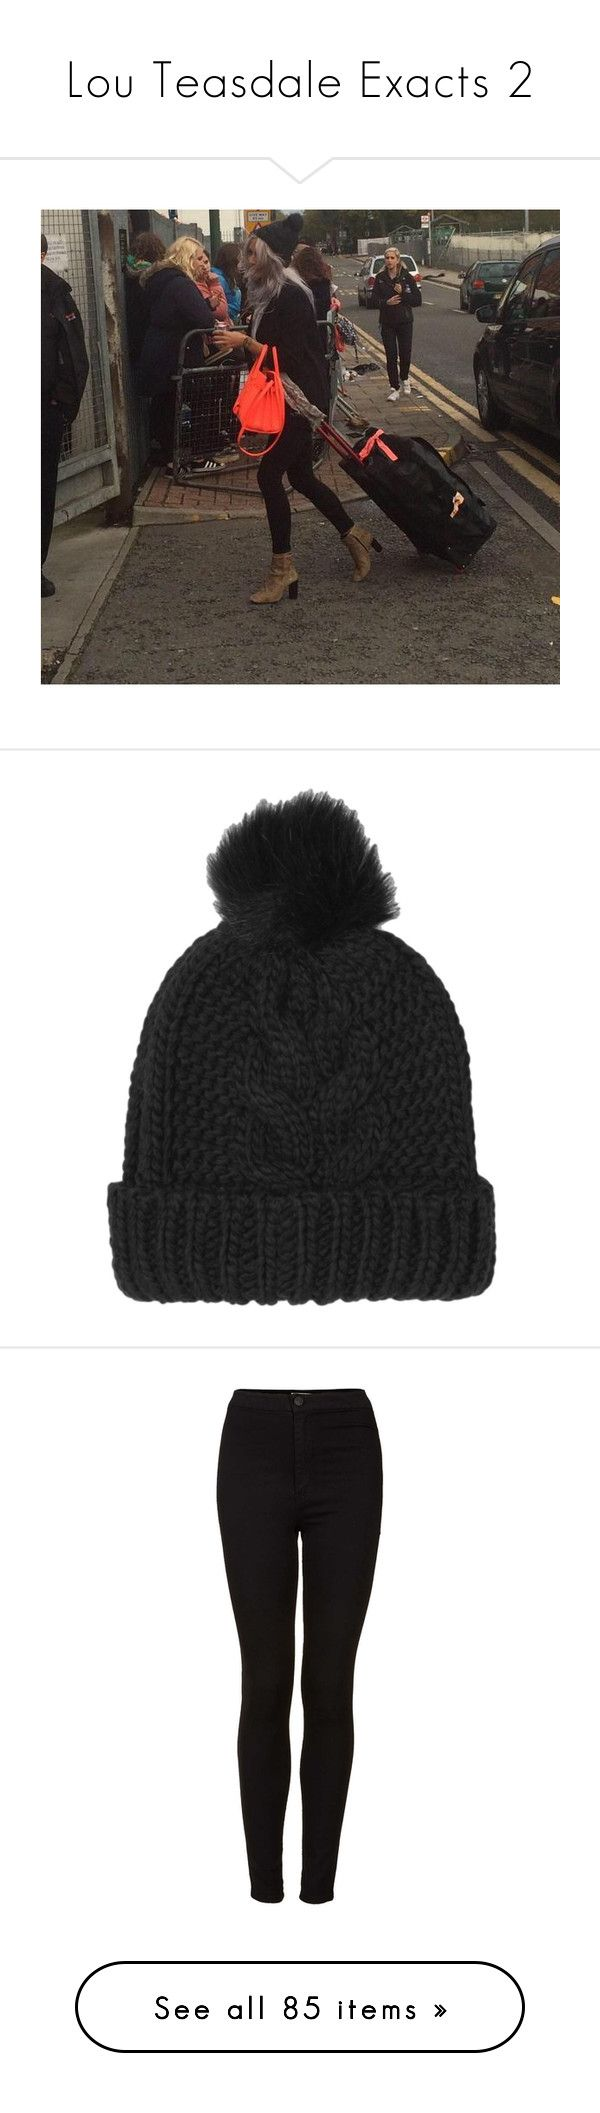 """""""Lou Teasdale Exacts 2"""" by julie-louise-oliver ❤ liked on Polyvore featuring accessories, hats, beanie, hair accessories, black, pom pom beanie, cable knit beanie, pom pom hat, faux fur beanie and cable knit hat"""